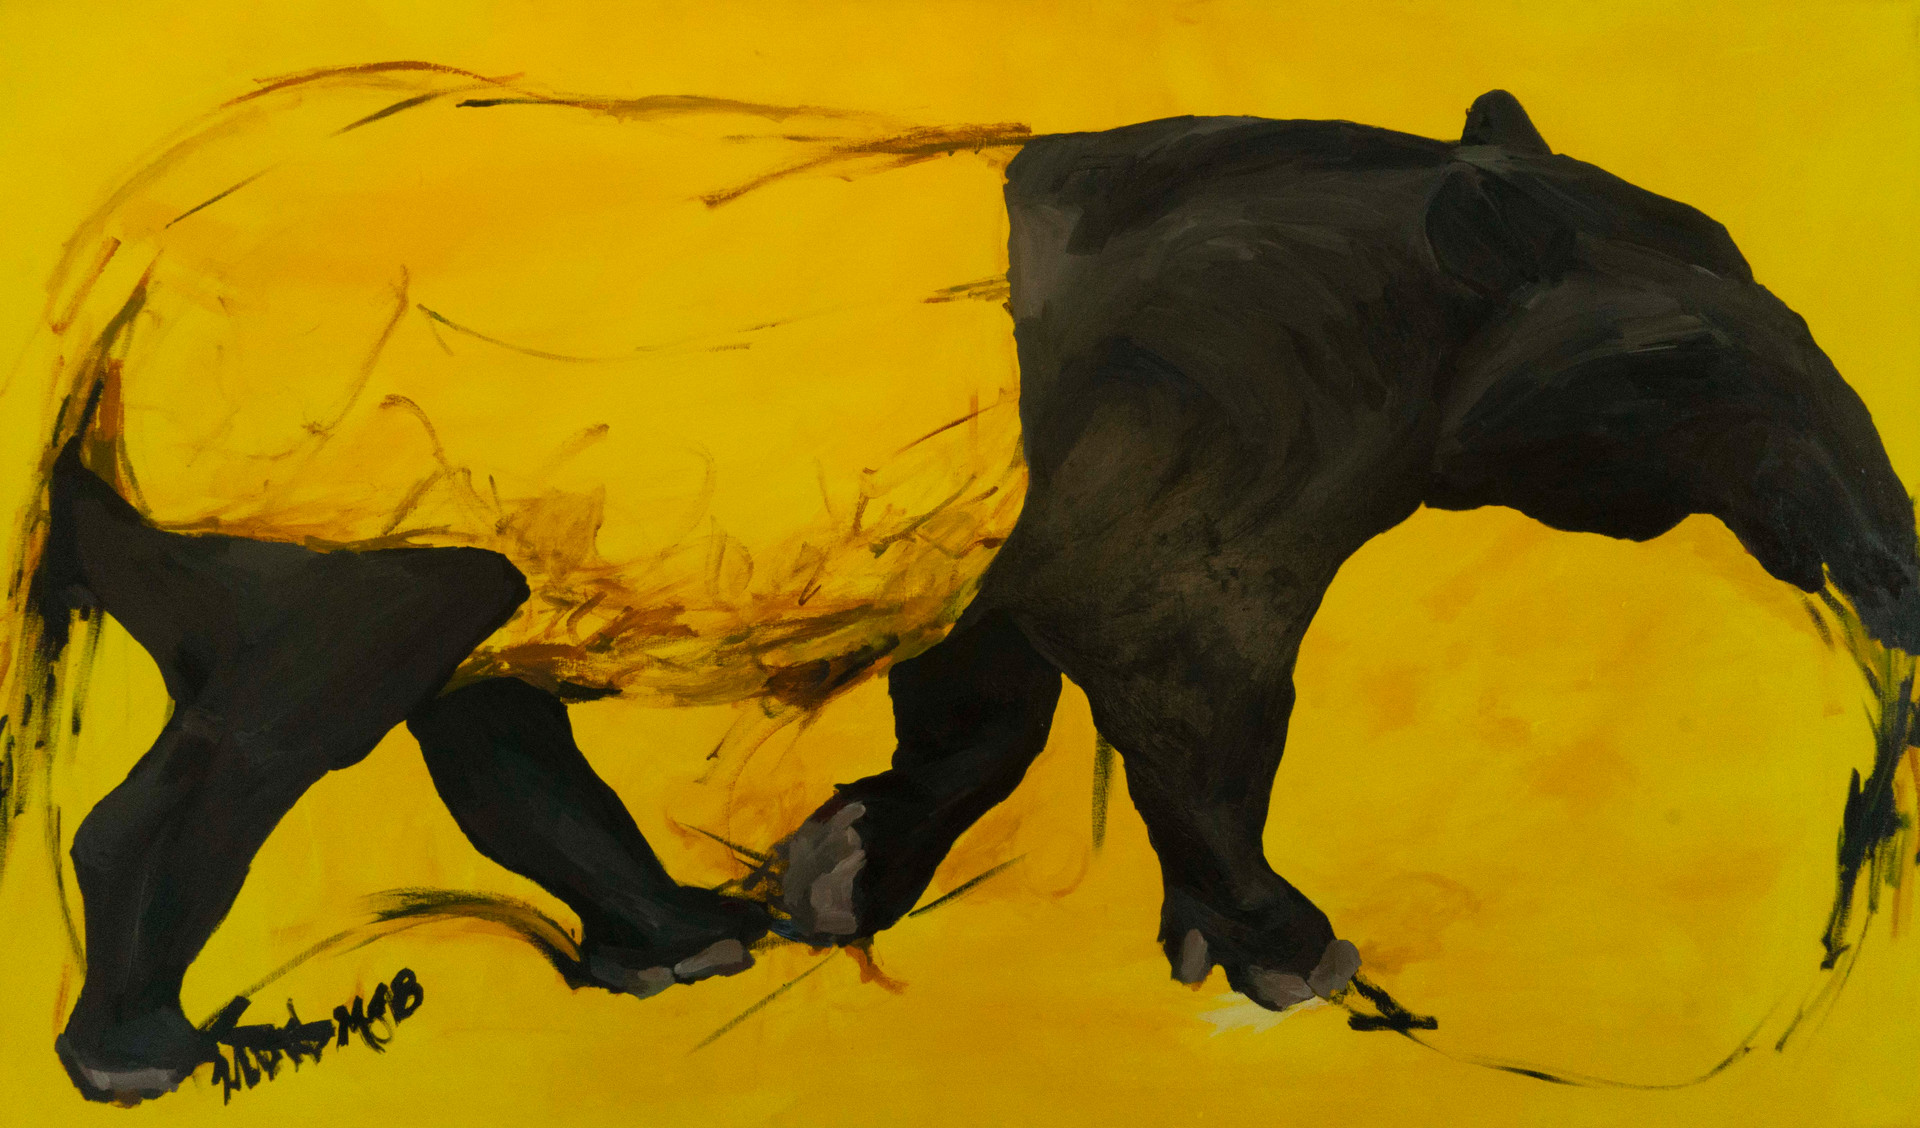 sunshine tapir, 36x60inches, oil and acrylic on canvas, 2015